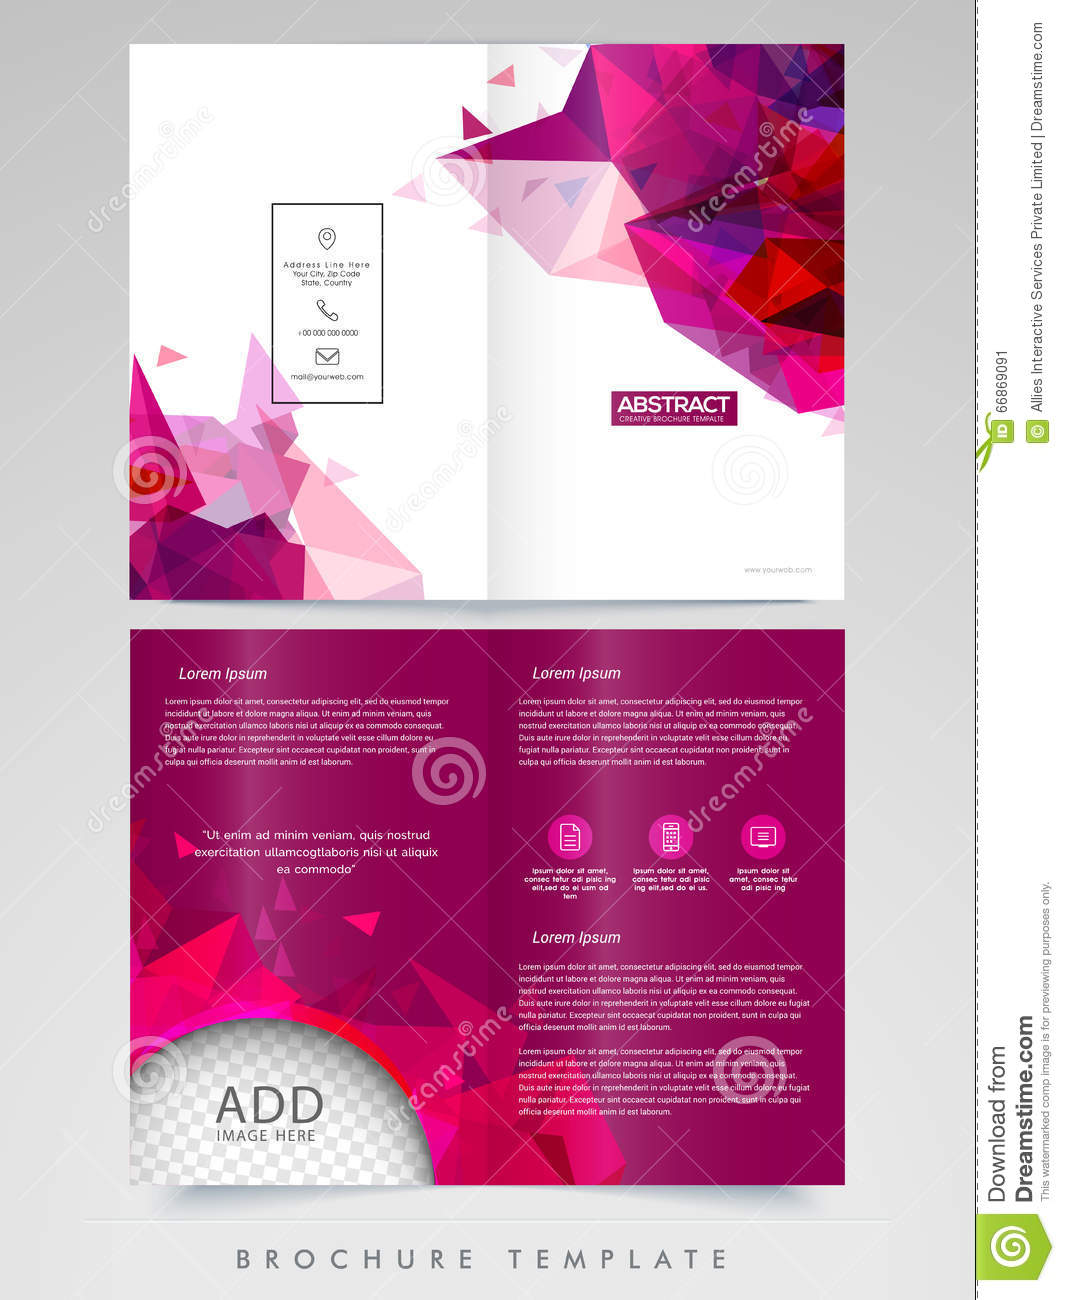 Professional Brochure Template Or Flyer Design Stock Image - Professional brochure templates free